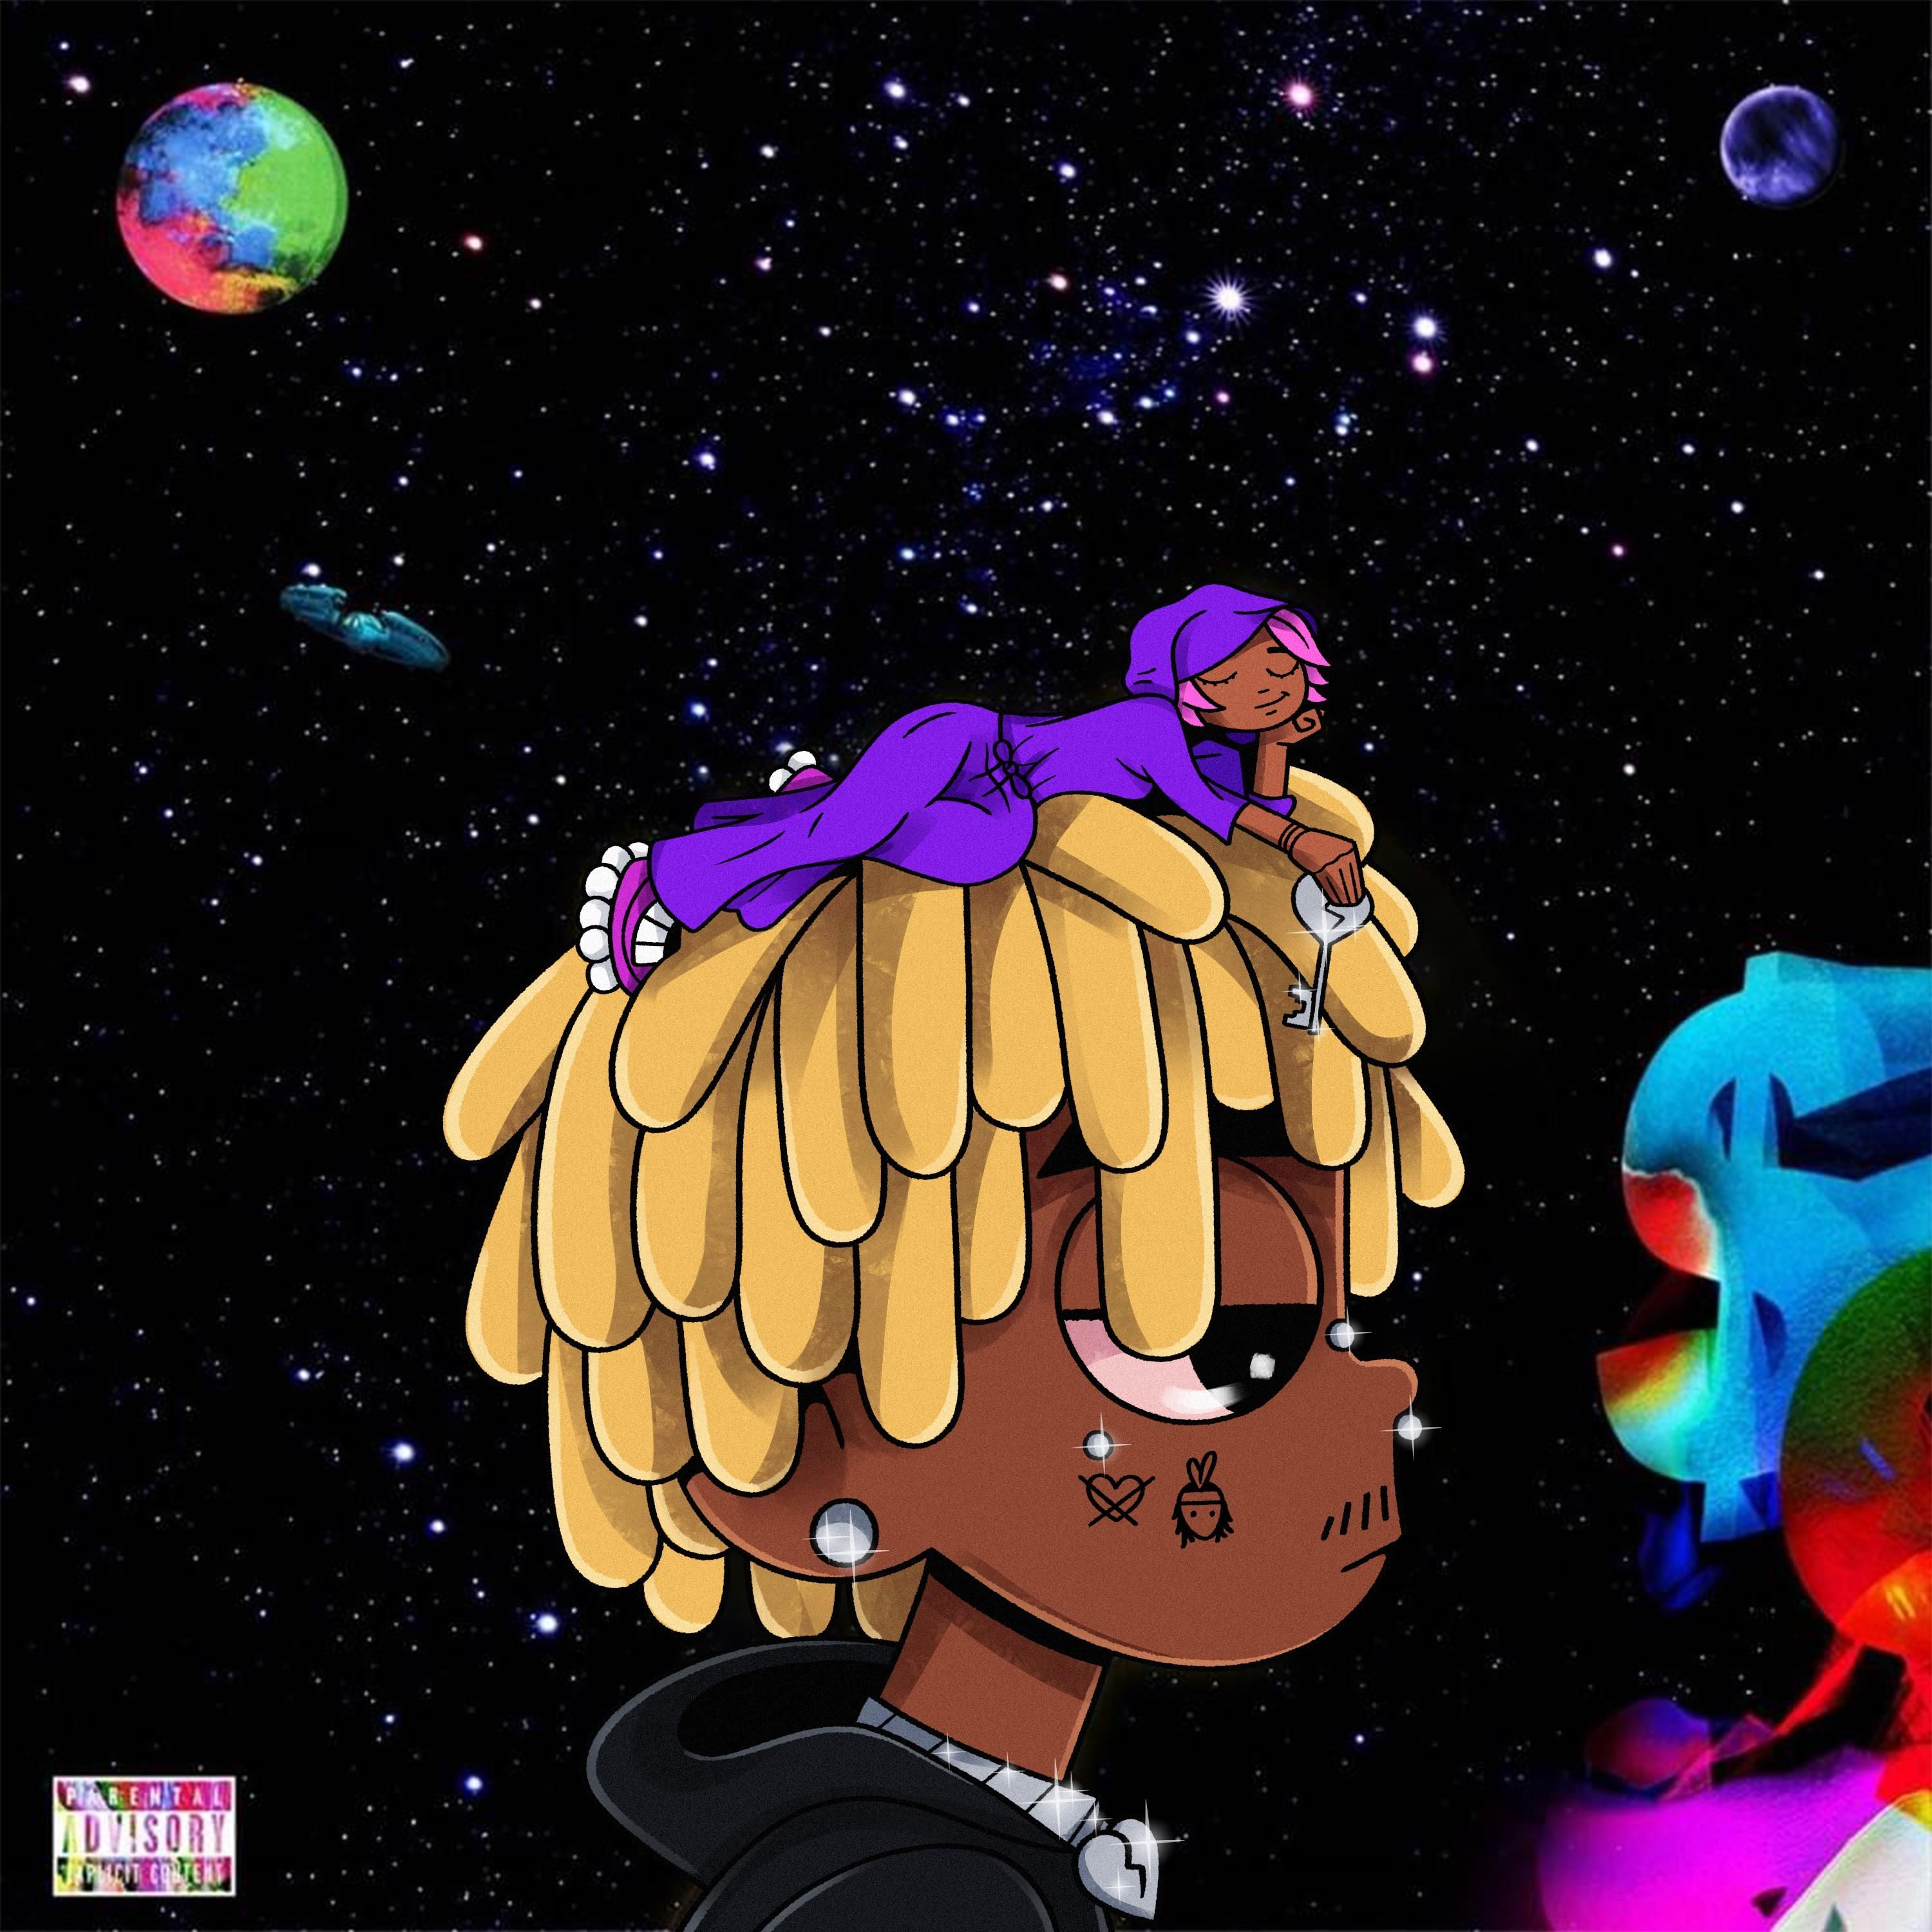 Pin On Lil Uzi Vert Rage Central A collection of the top 37 cartoon lil uzi vert wallpapers and backgrounds available for download for free. pin on lil uzi vert rage central